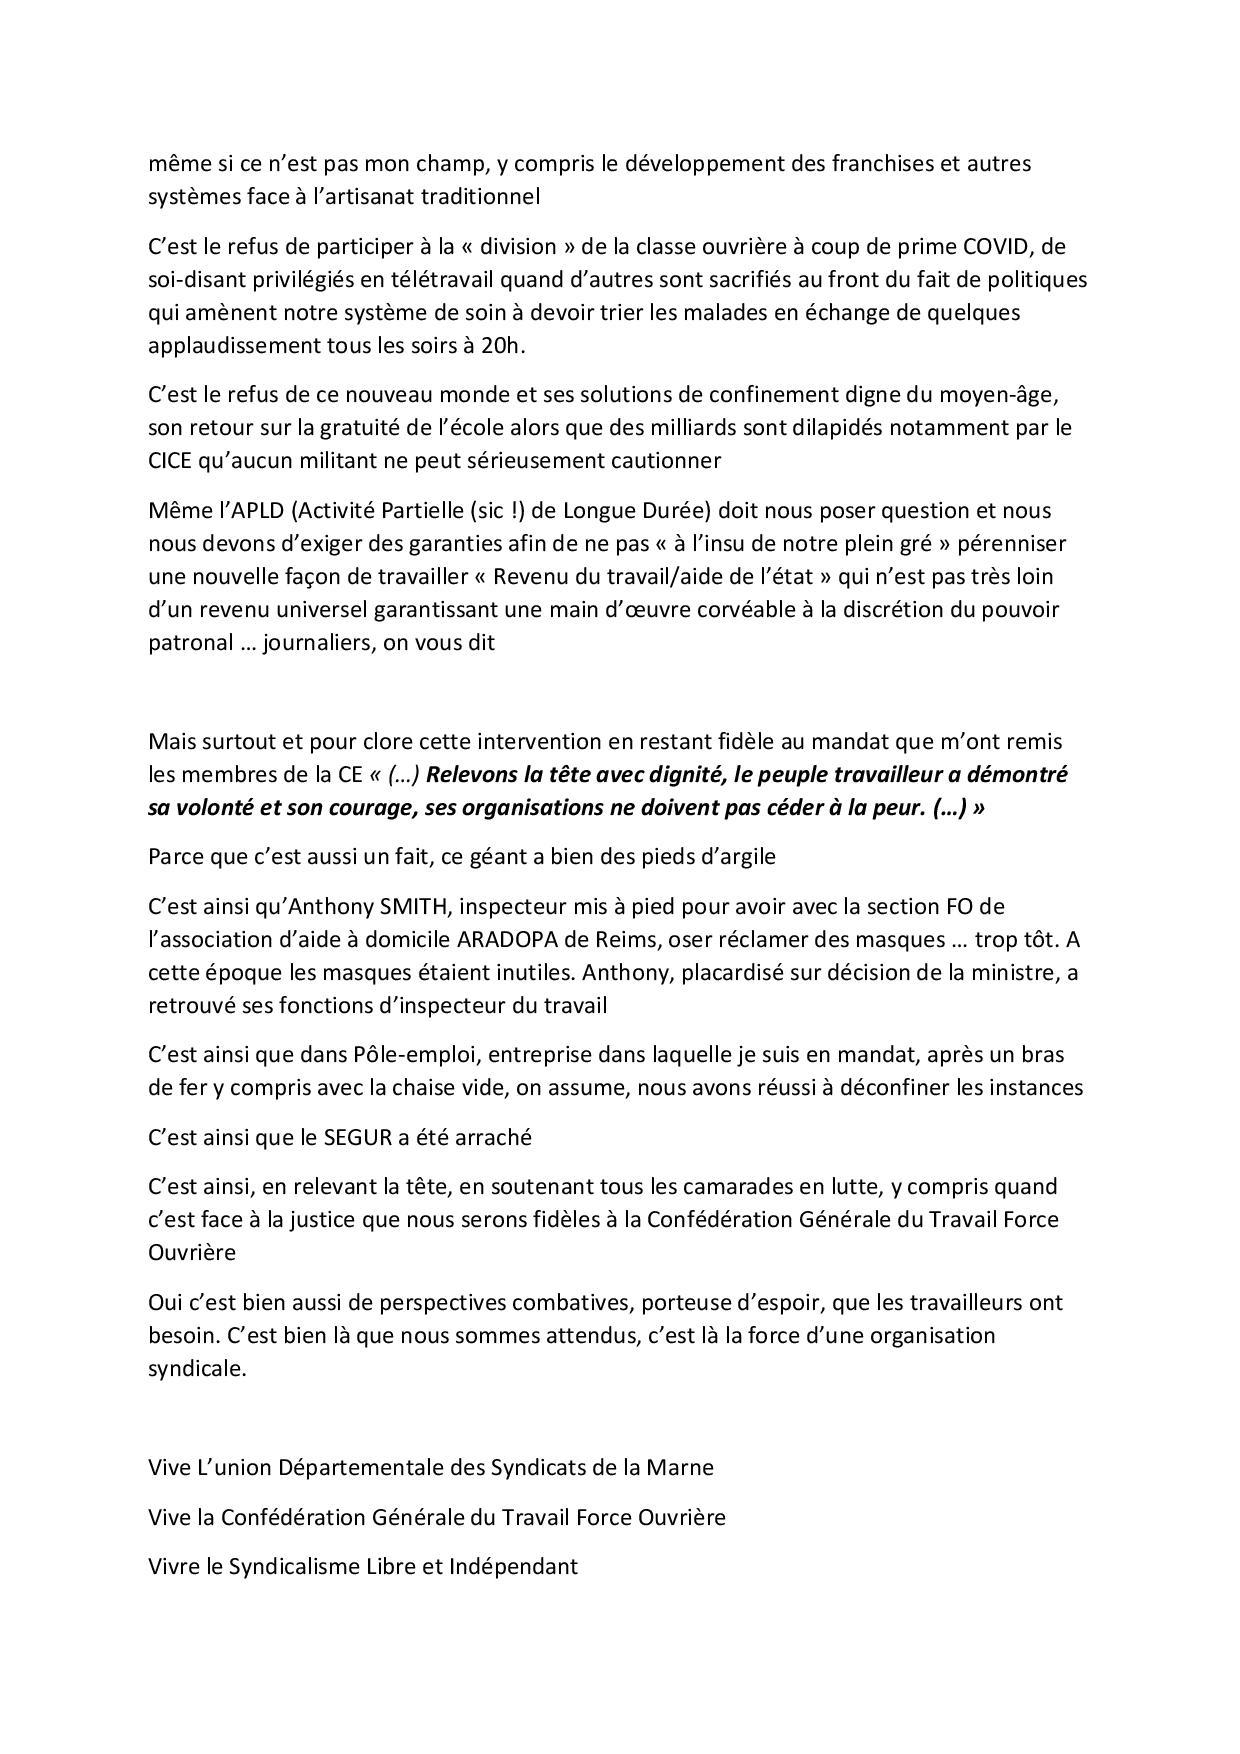 Intervention ud cgt fo marne ccn 23 et 24 09 20 page 003